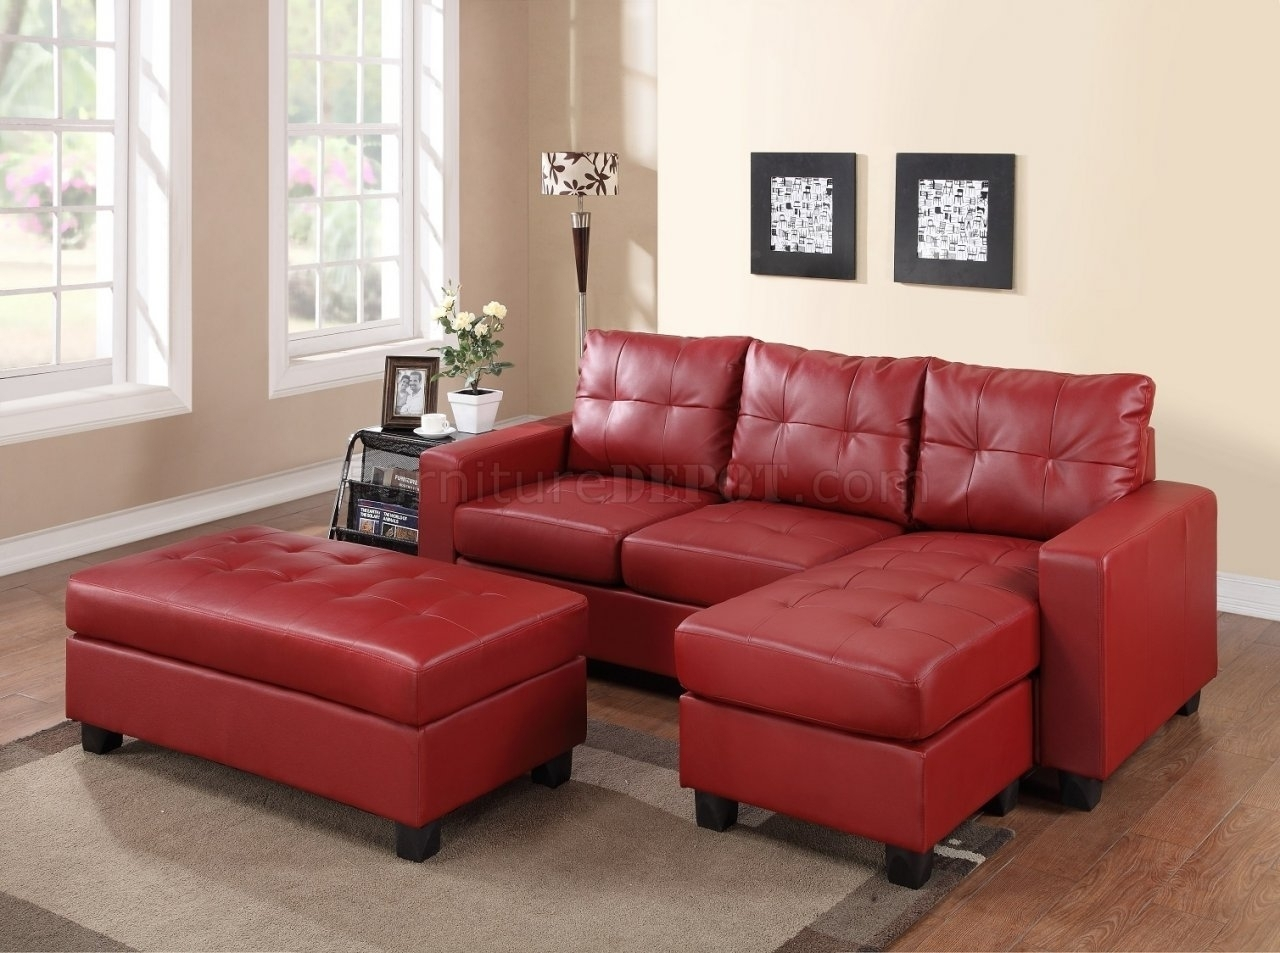 Small Red Leather Sectional Sofa • Leather Sofa In Small Red Leather Sectional Sofas (Image 5 of 10)